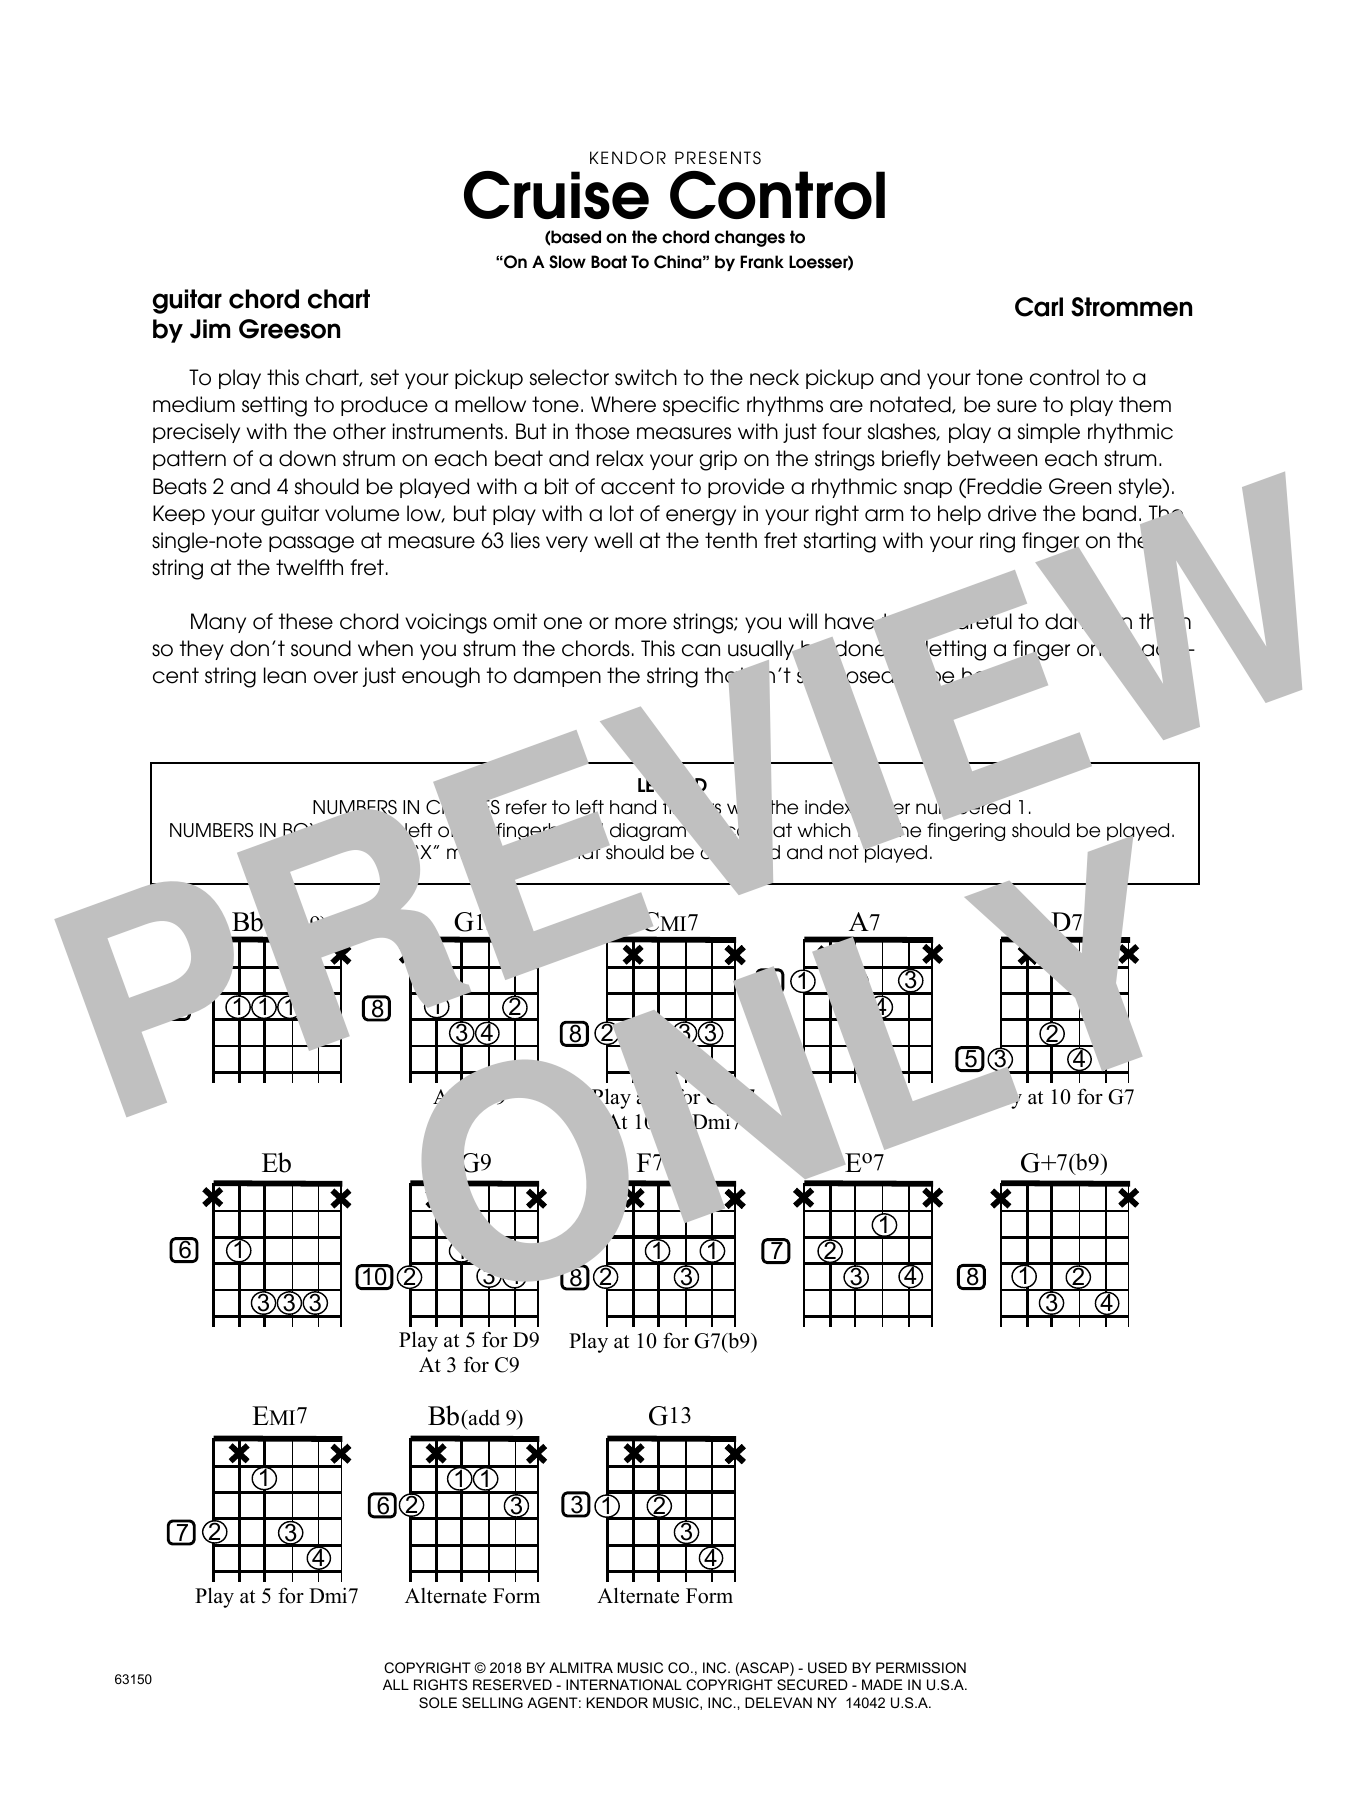 Carl Strommen Cruise Control - Guitar Chord Chart sheet music preview music notes and score for Jazz Ensemble including 1 page(s)